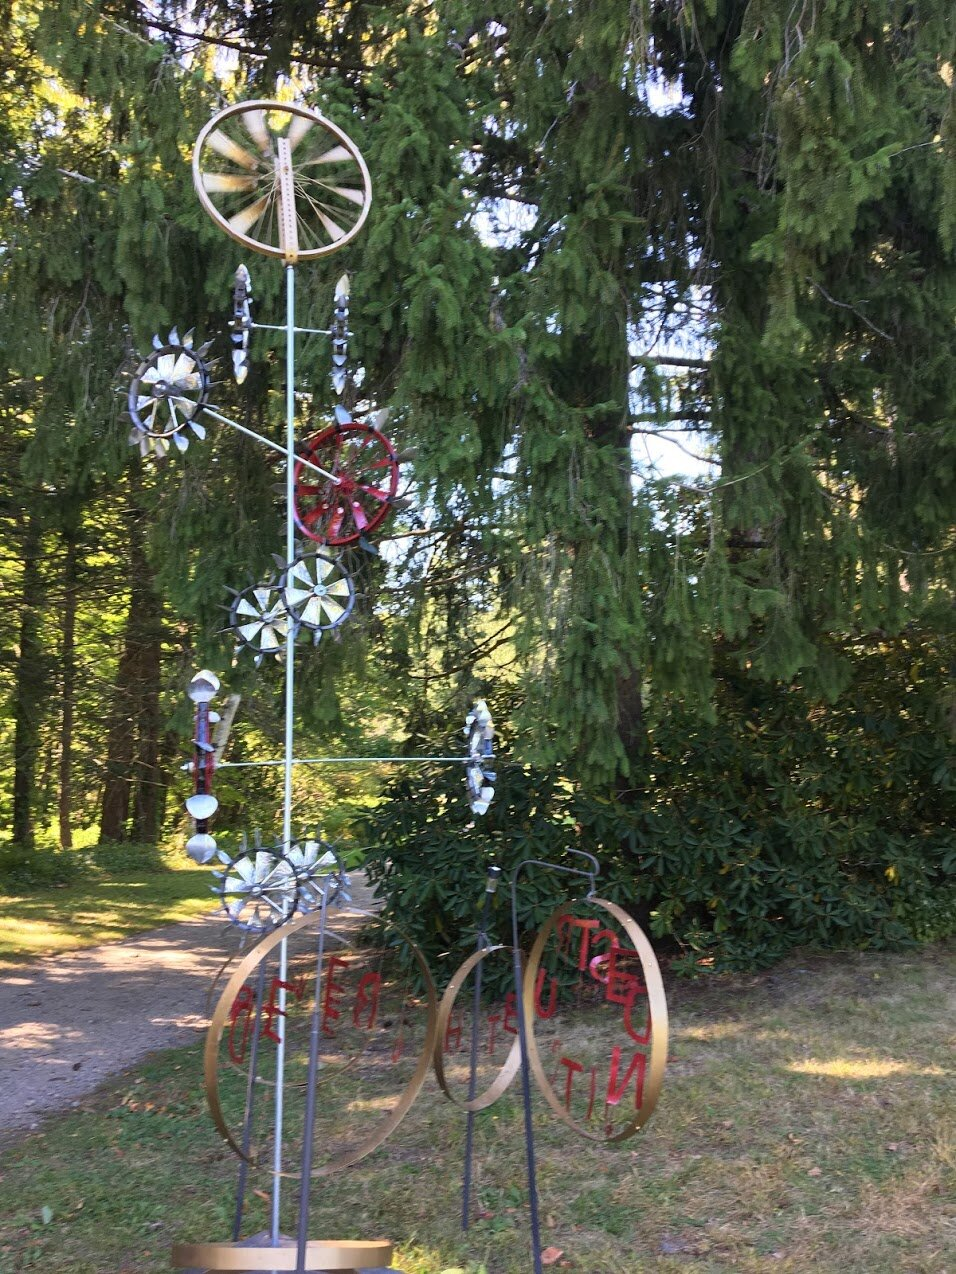 maudslay-state-park-sculpture-wheels.JPG